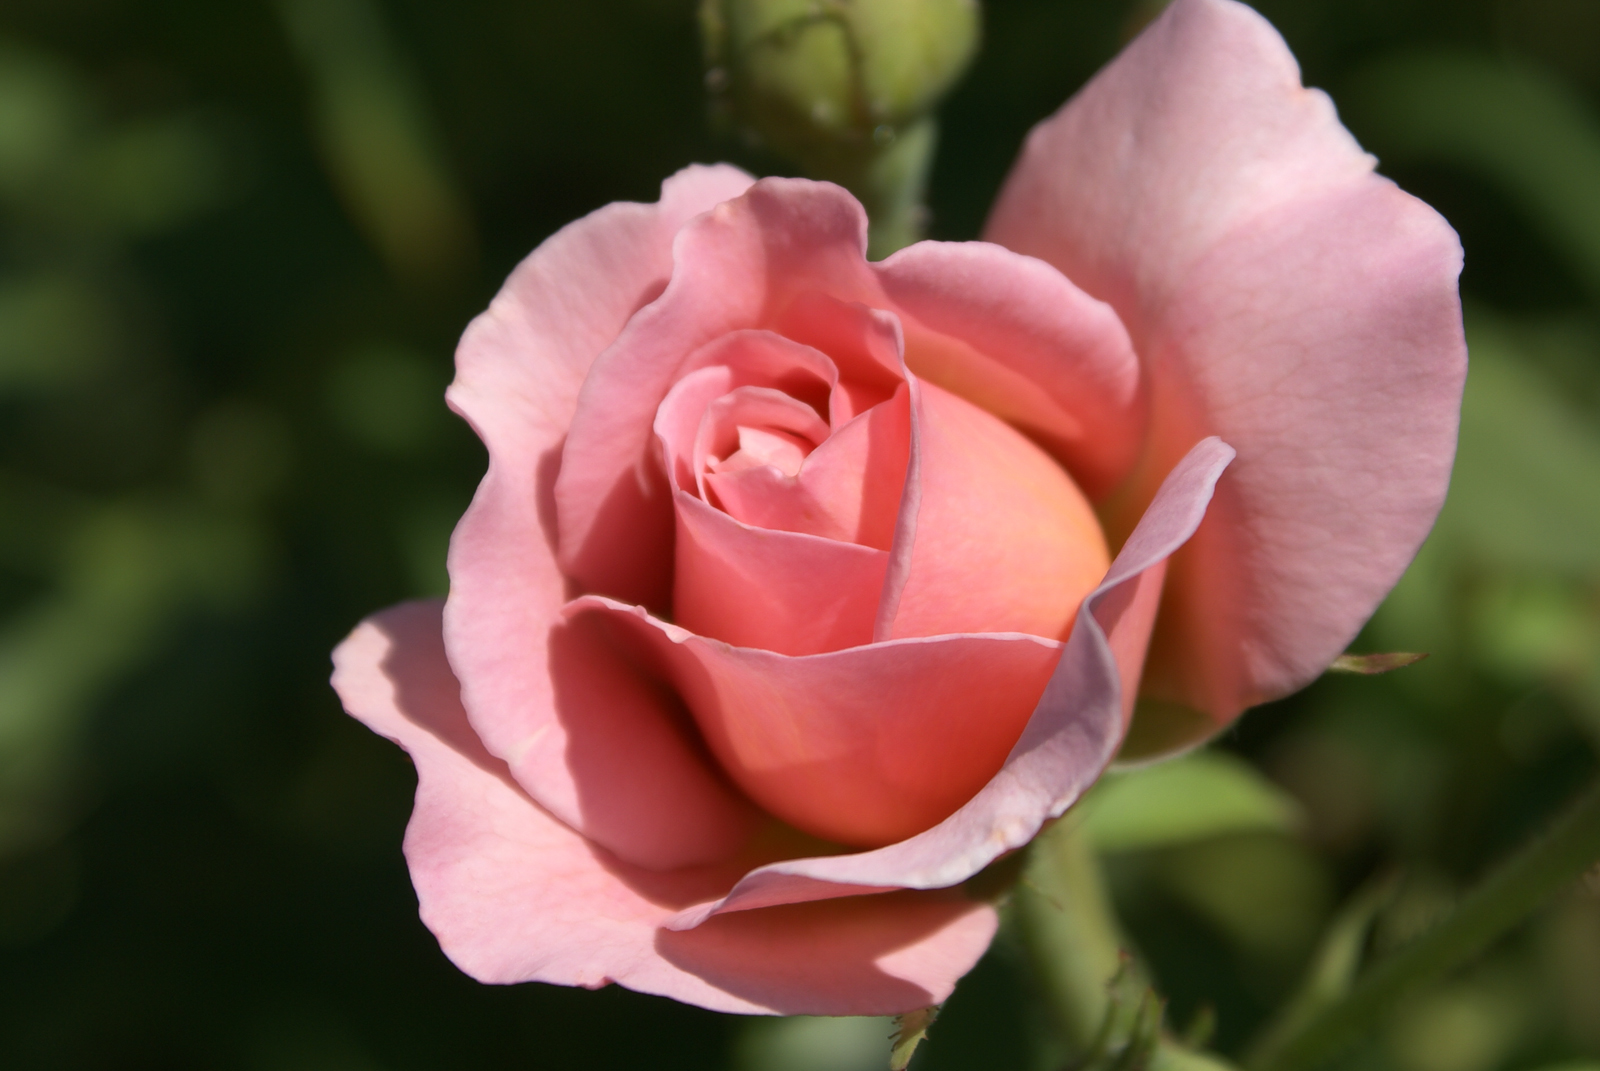 https://i0.wp.com/bythedrop.com/gallery/var/albums/plants-flowers/roses/Rose-English-Belle-Story-Blooming-Pink-Petals-Yellow-Center.jpg